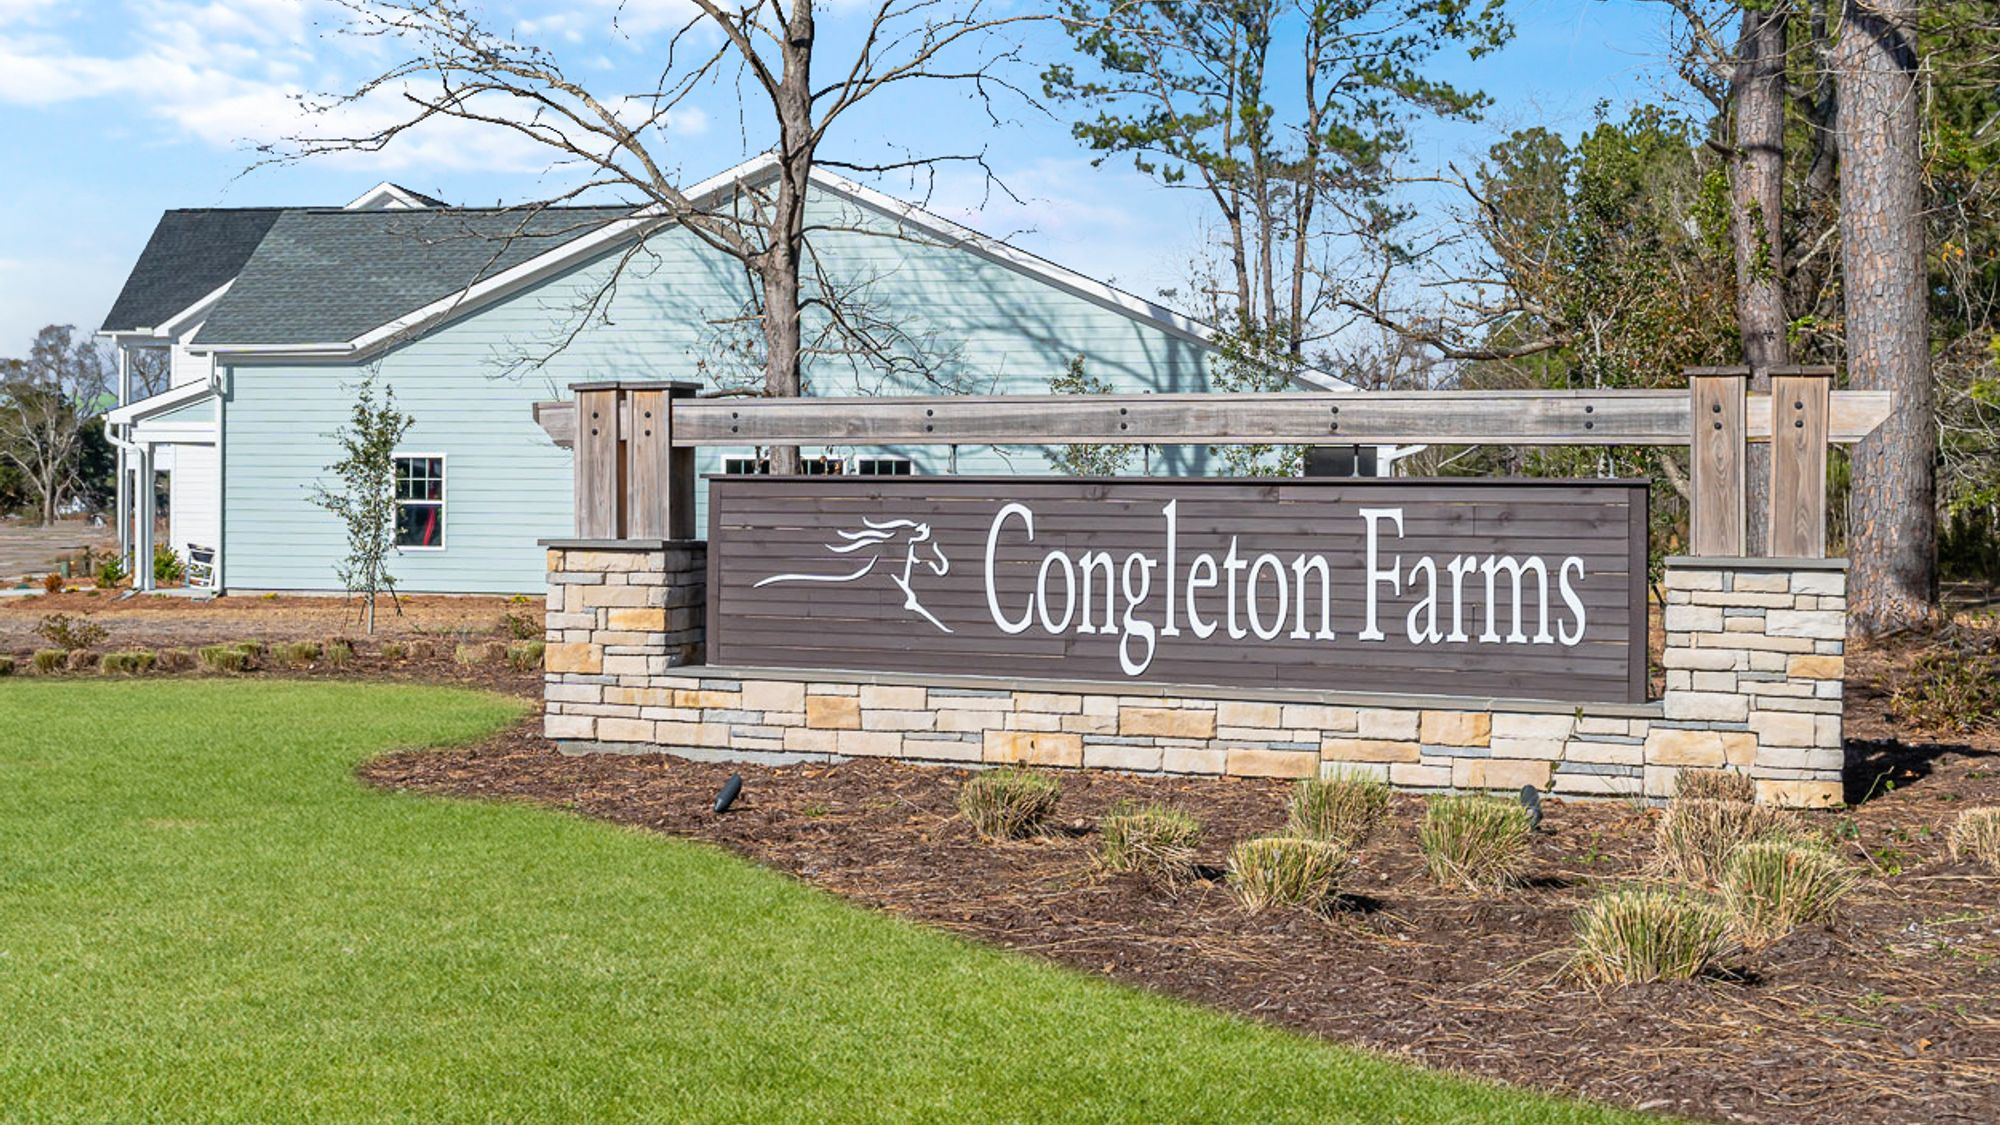 Entrance to Congleton Farms new home community in Wilmington NC